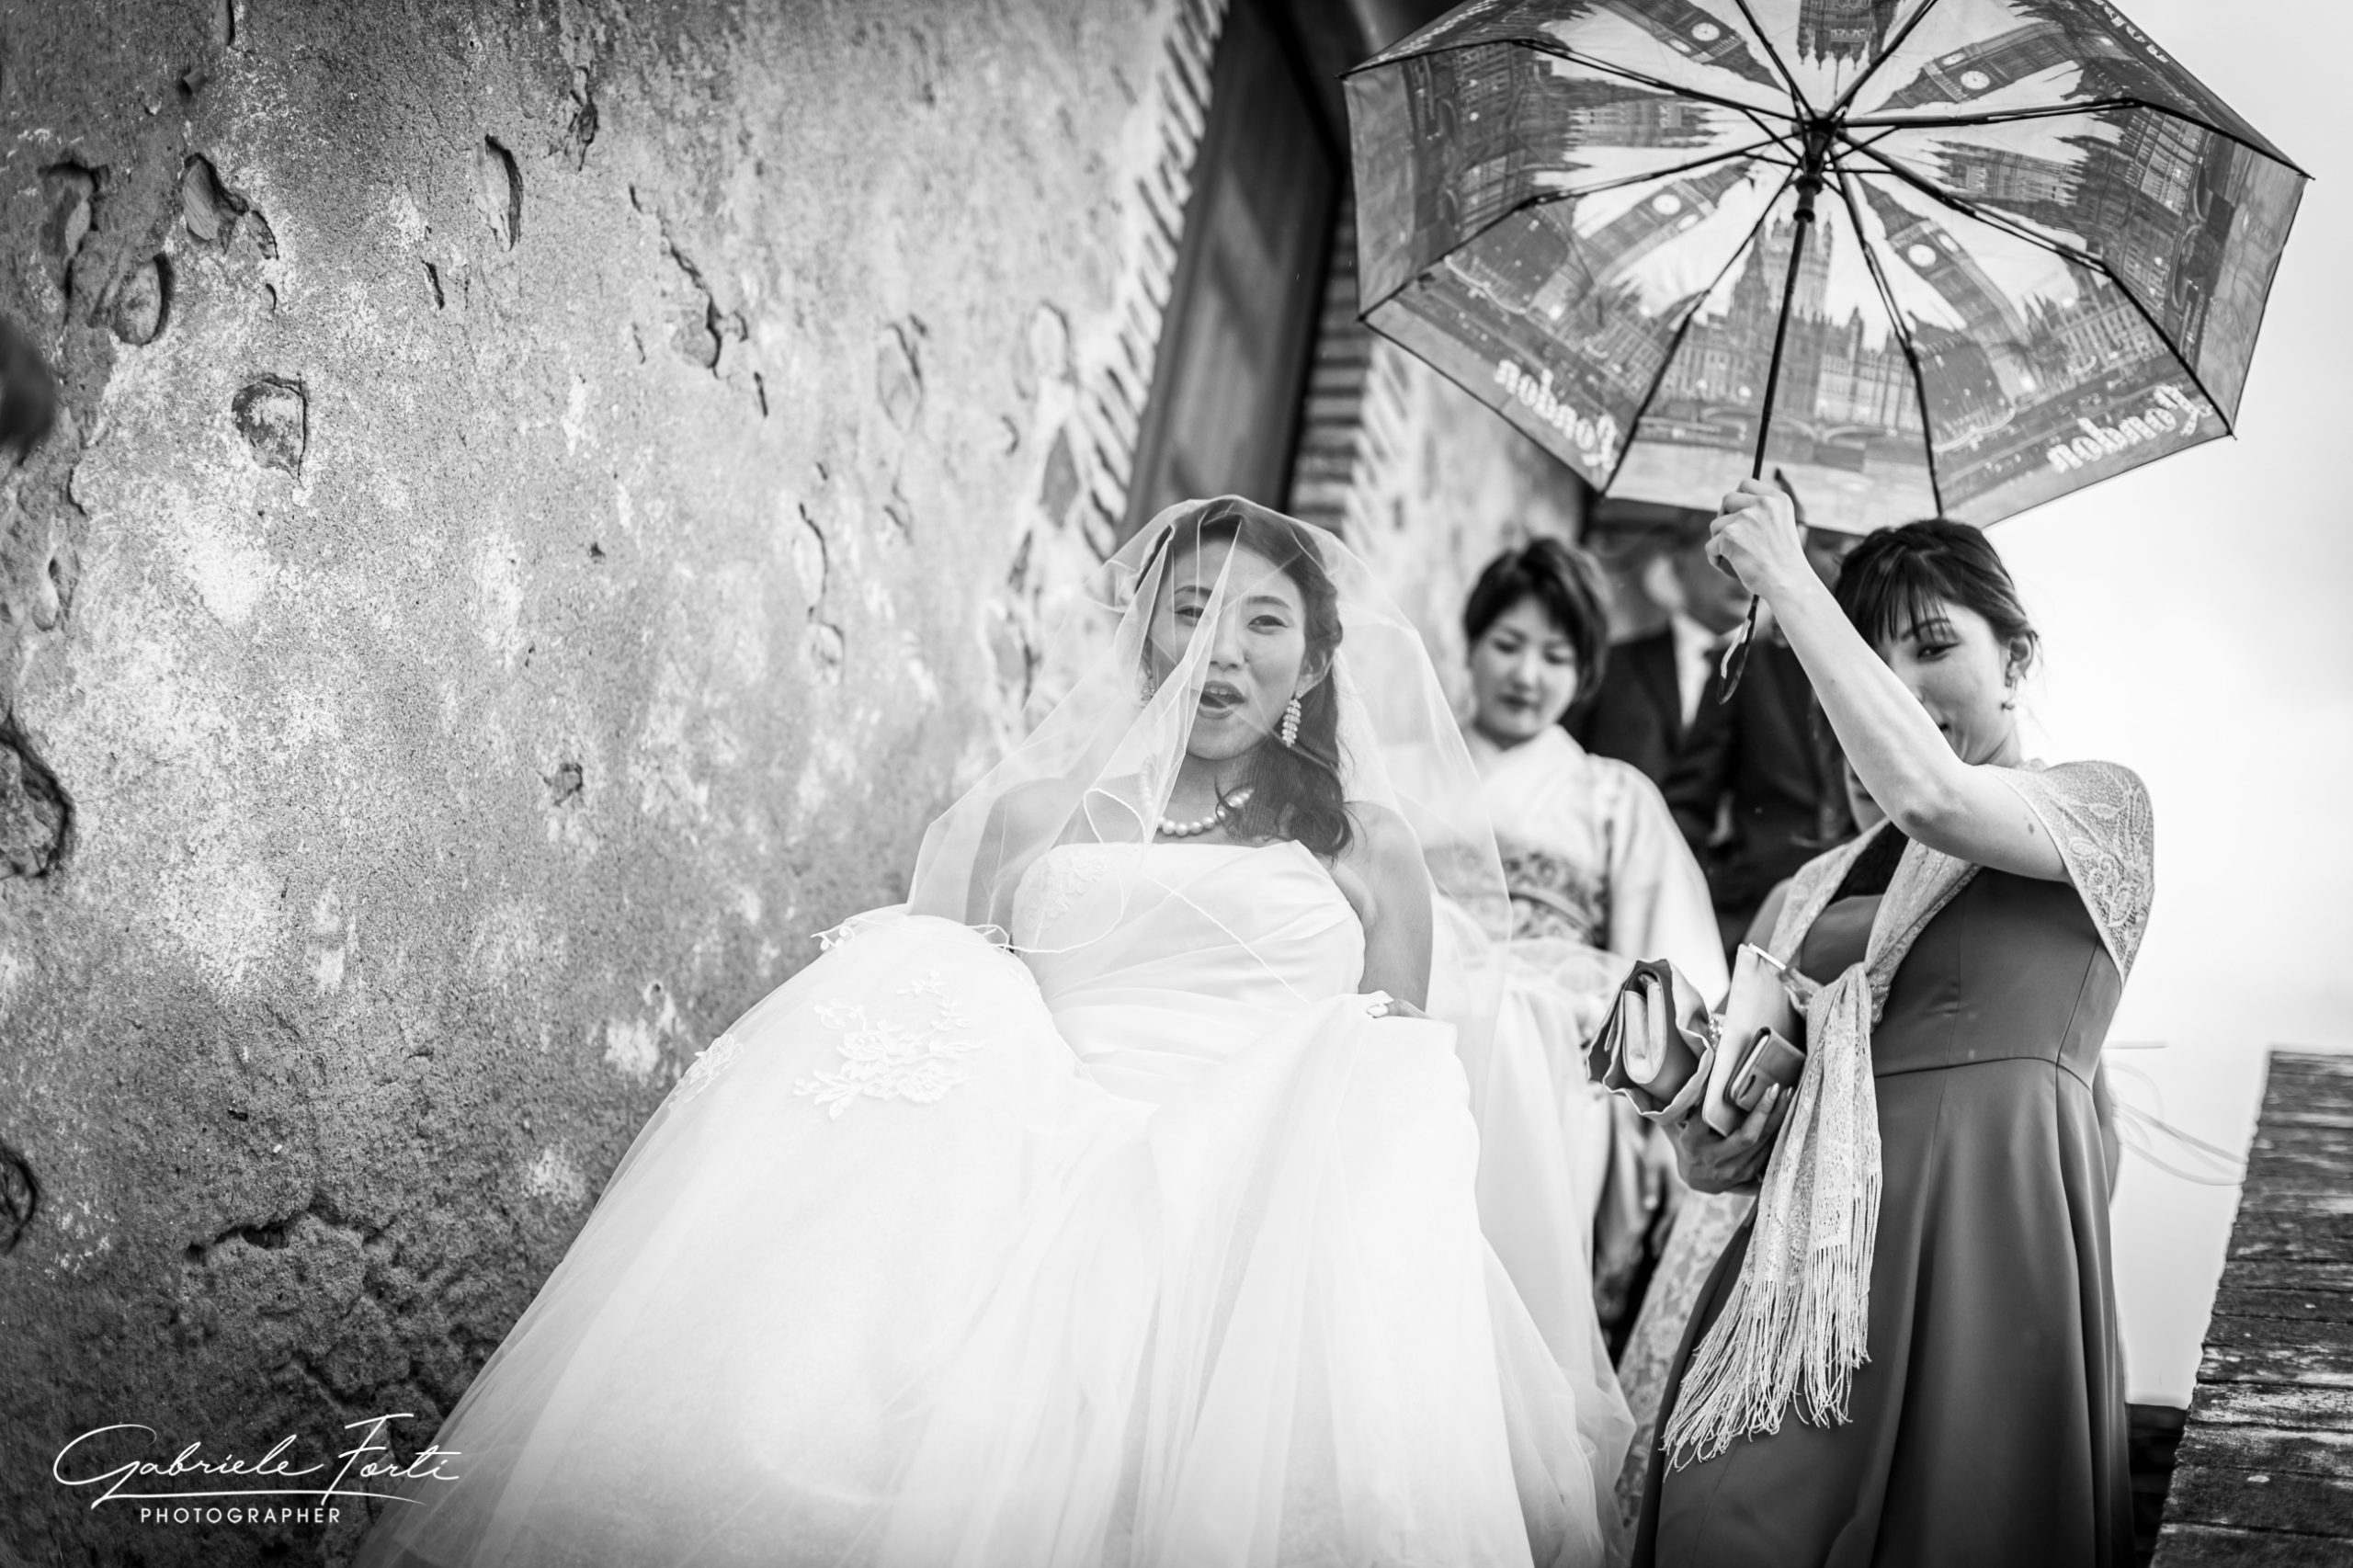 wedding-japan-tuscany-locanda-in-tuscany-photographer-siena-foto-forti-gabriele-7